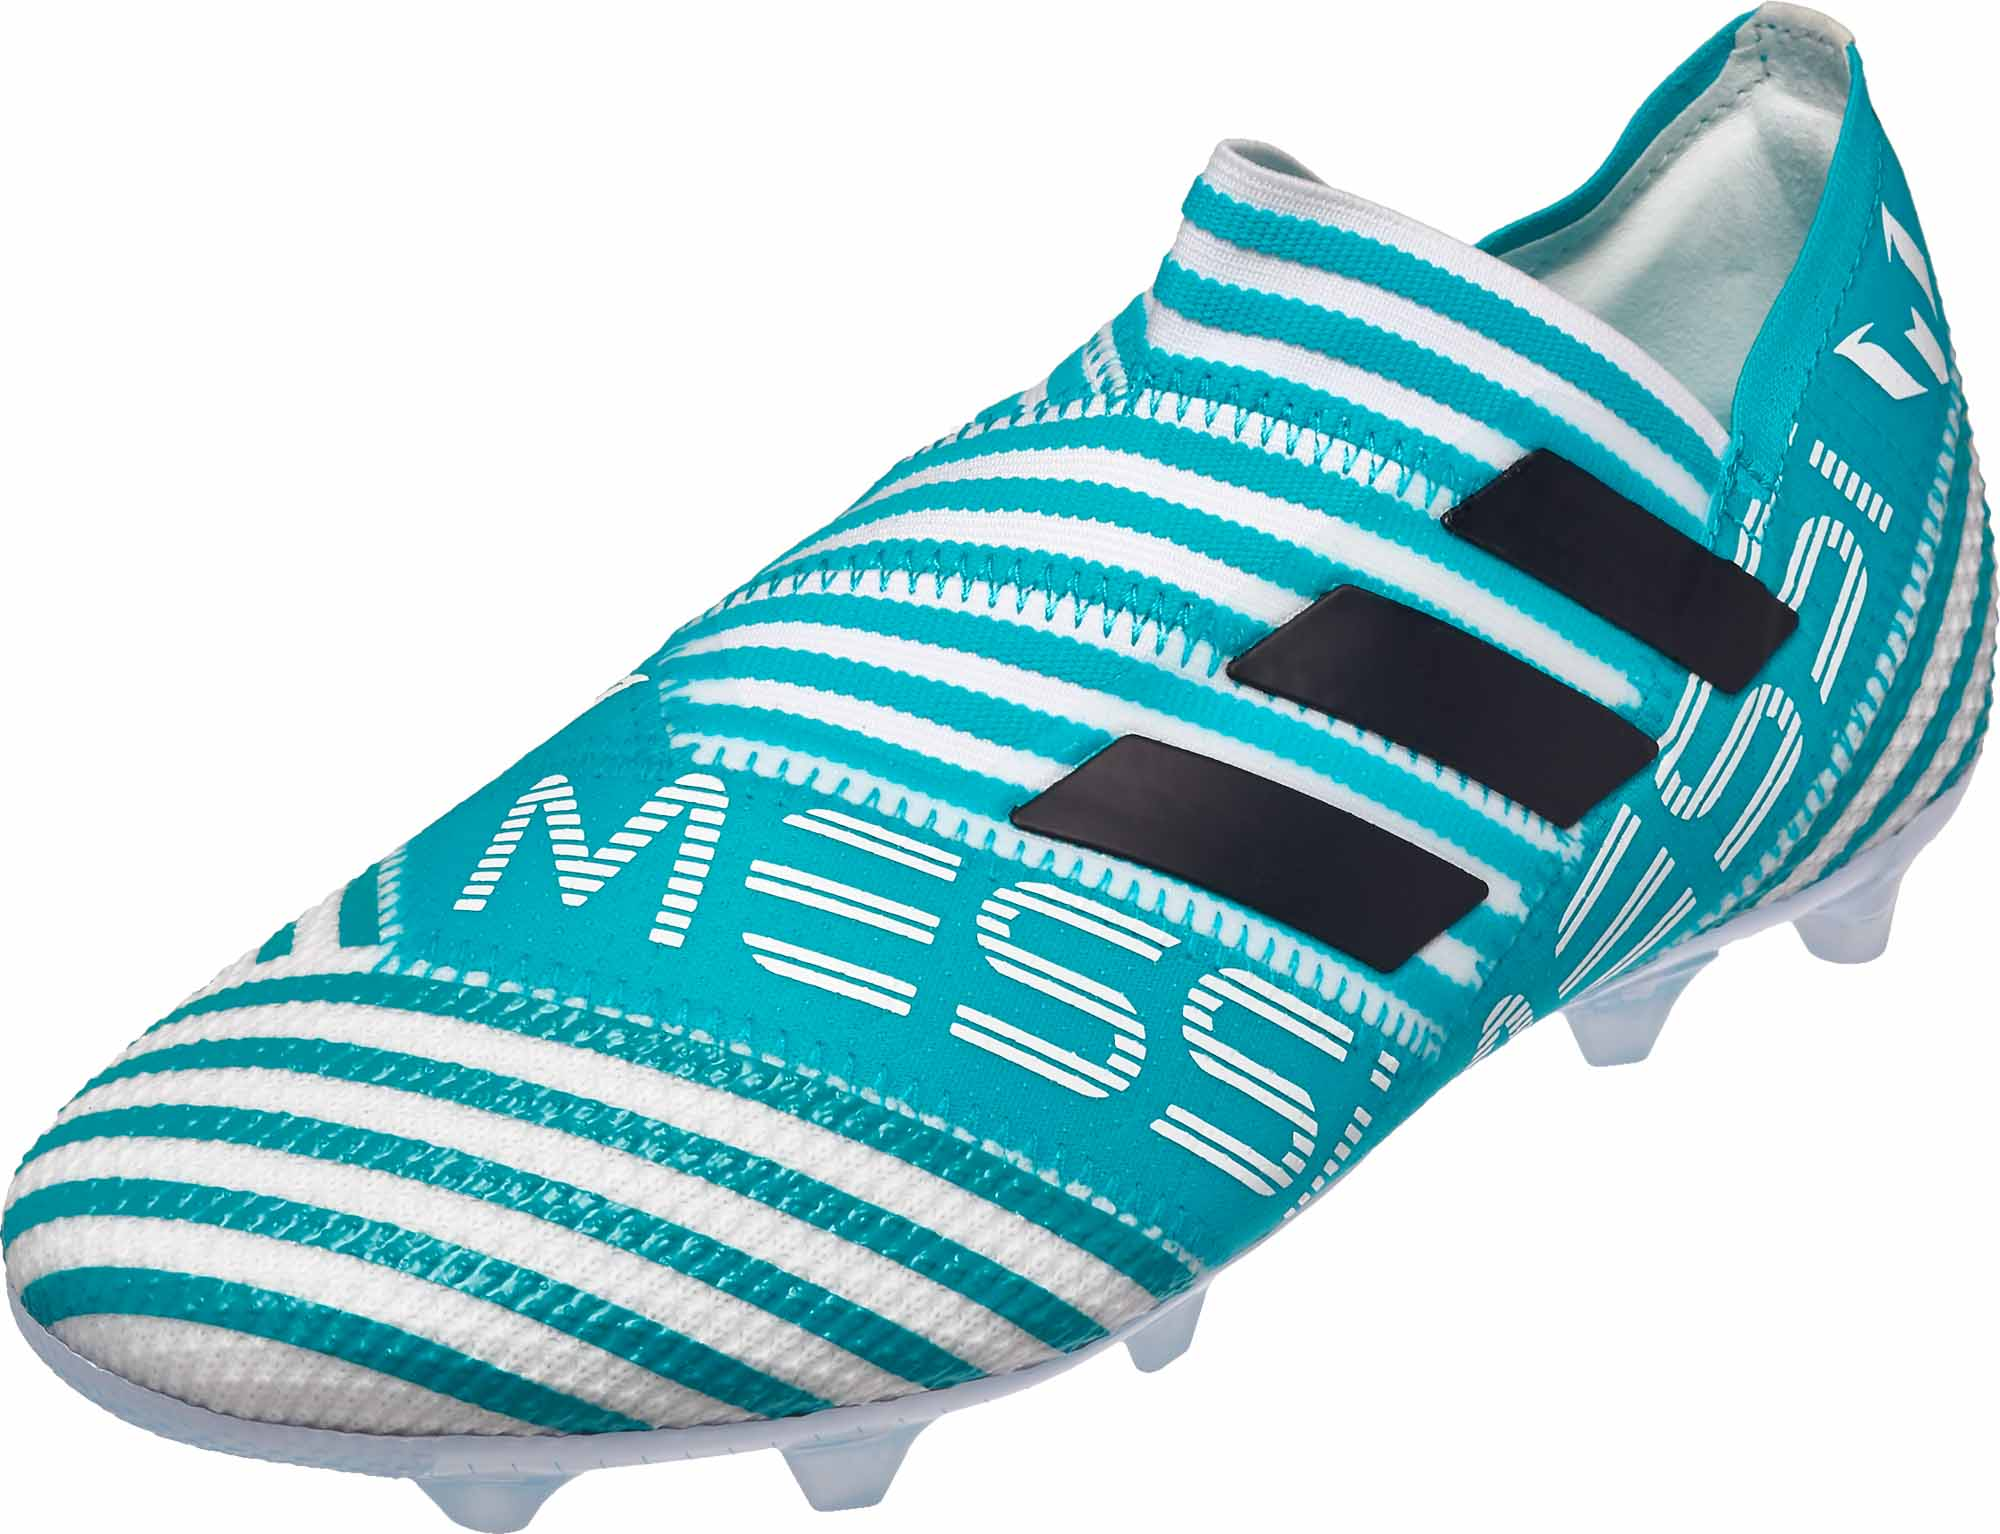 c82d34152507 adidas Kids Nemeziz Messi 17 360Agility FG - White   Legend Ink